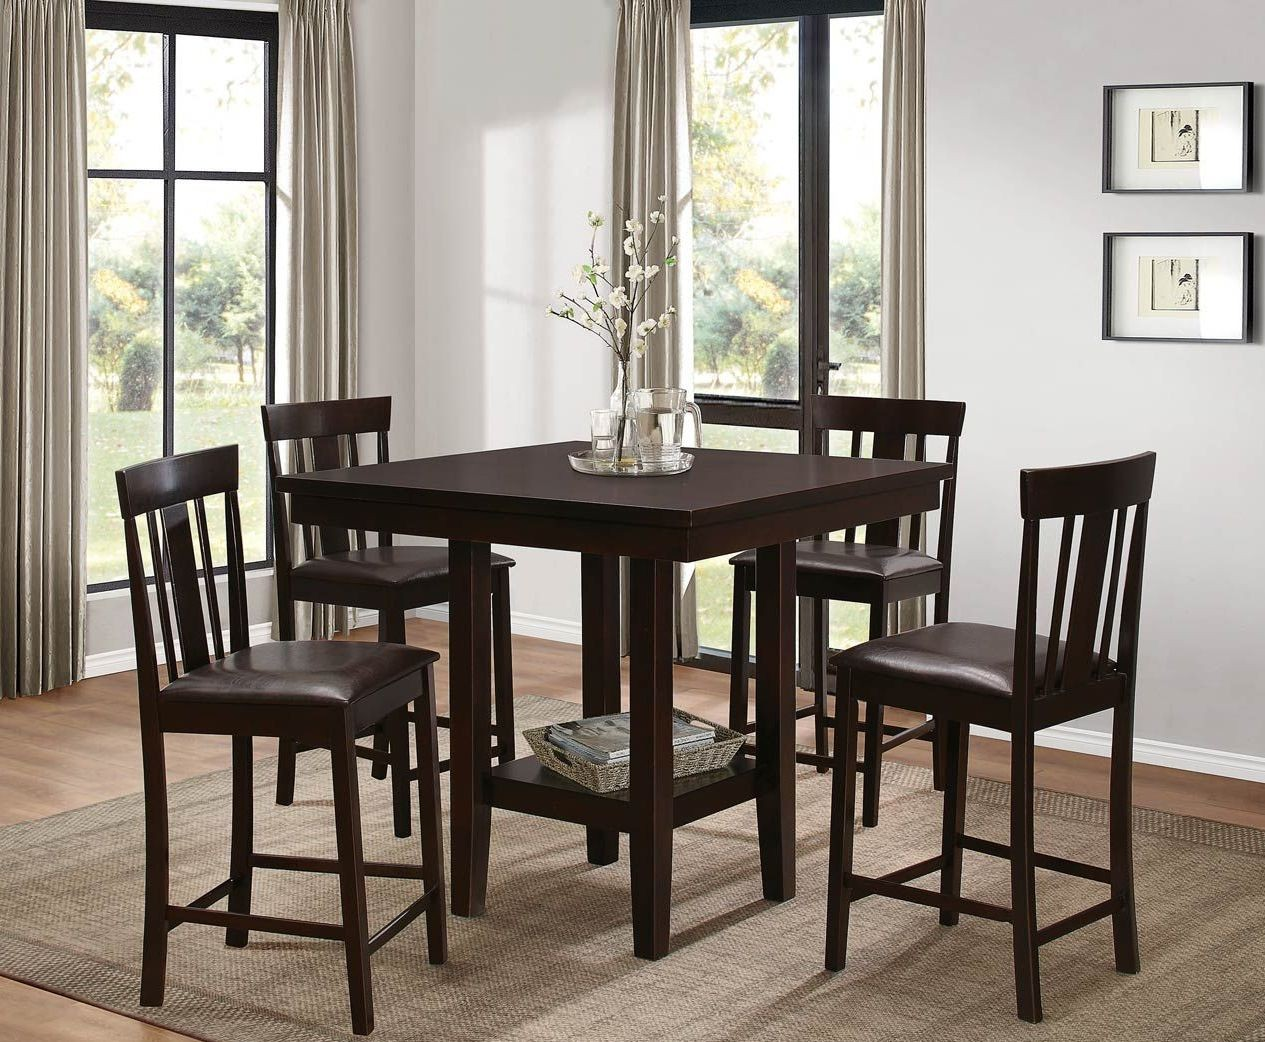 Diego brown square counter height dining room set from for Brown dining room set